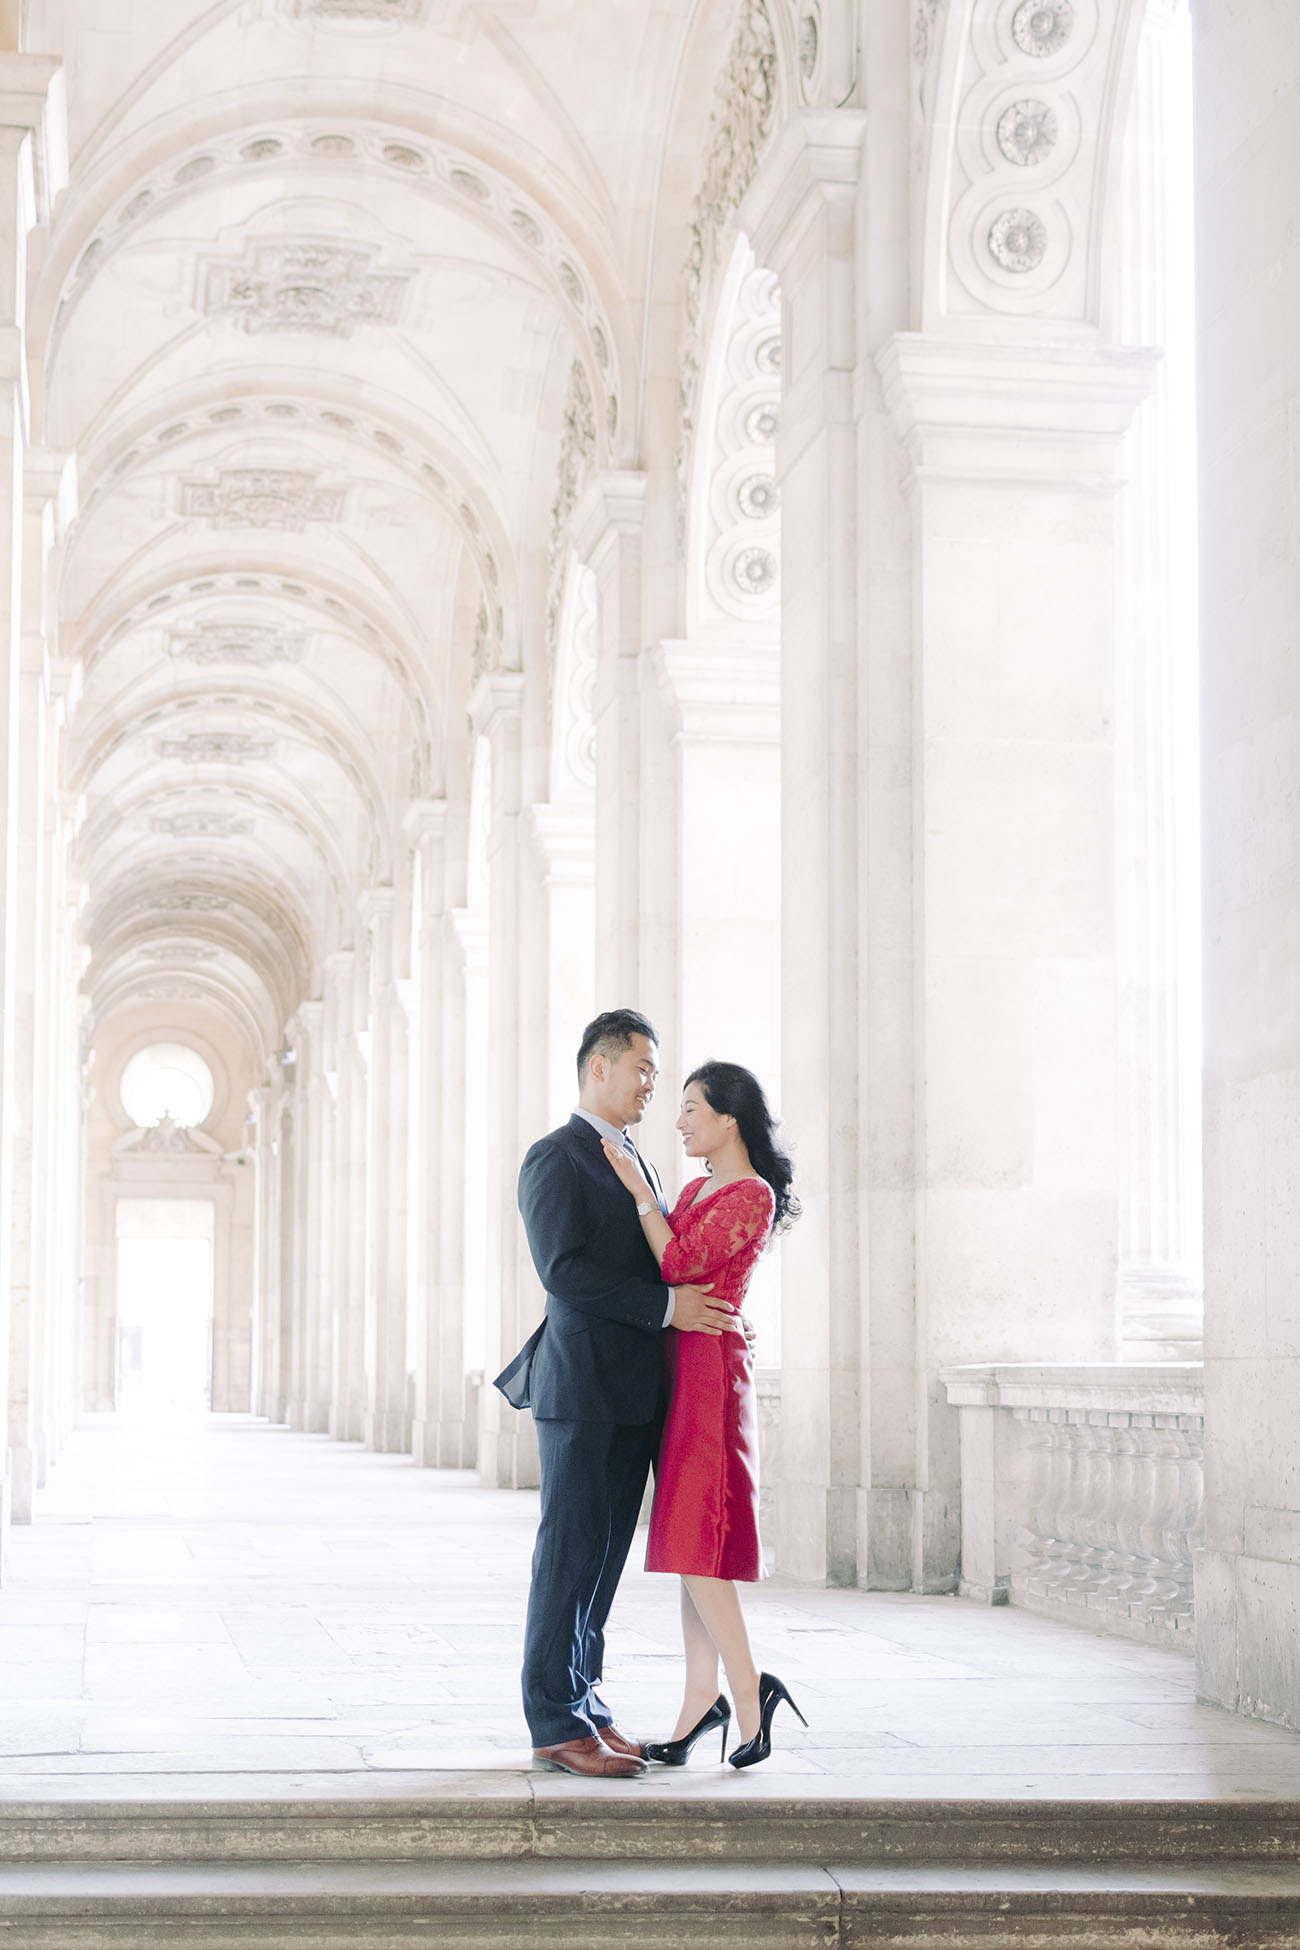 she put on her most beautiful red dress for photo pre wedding paris